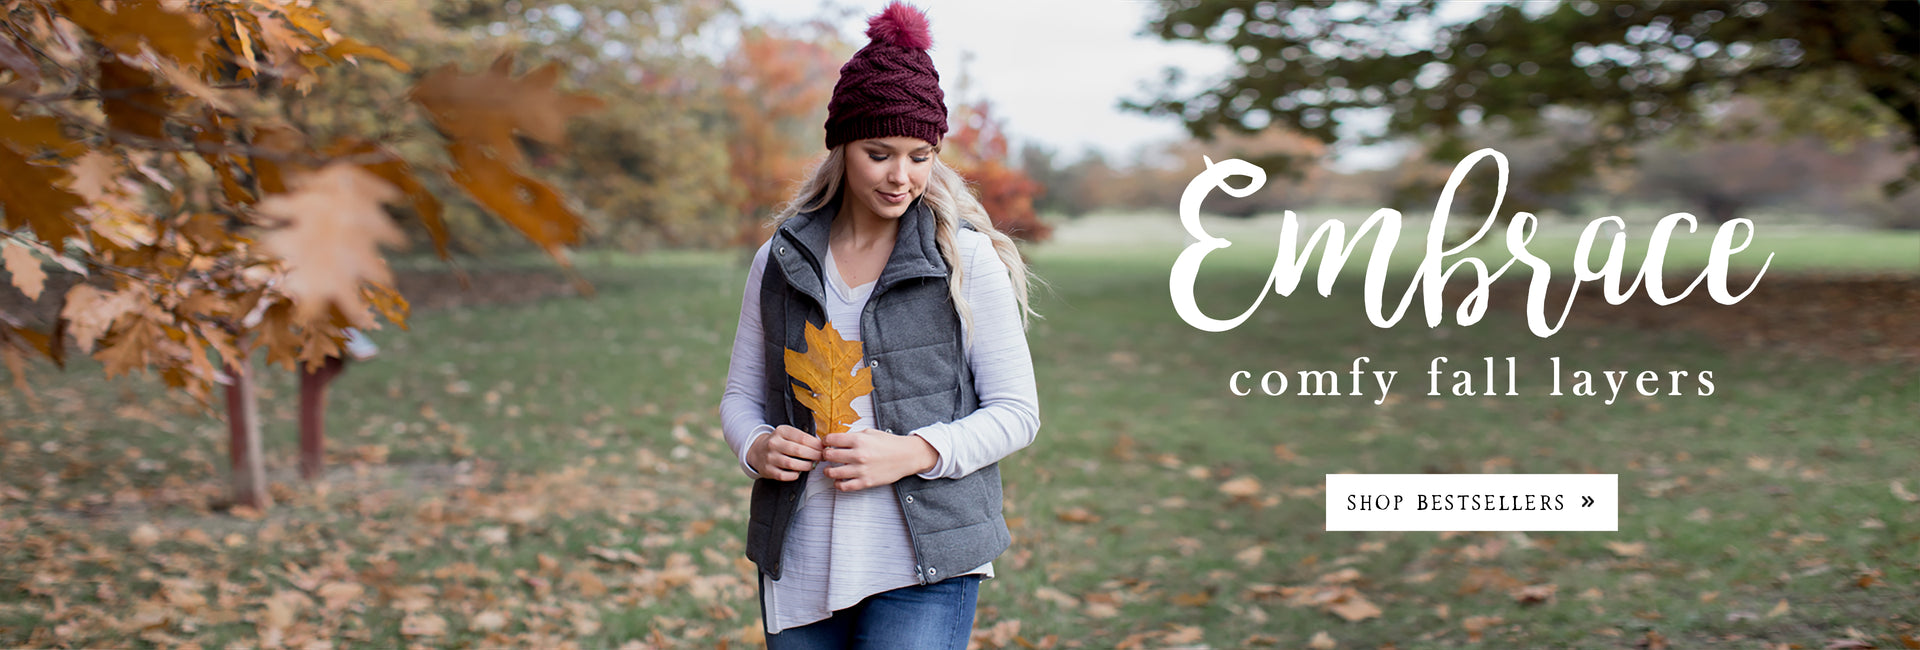 Embrace Comfy Fall Layers - Woman in vest holding leaf